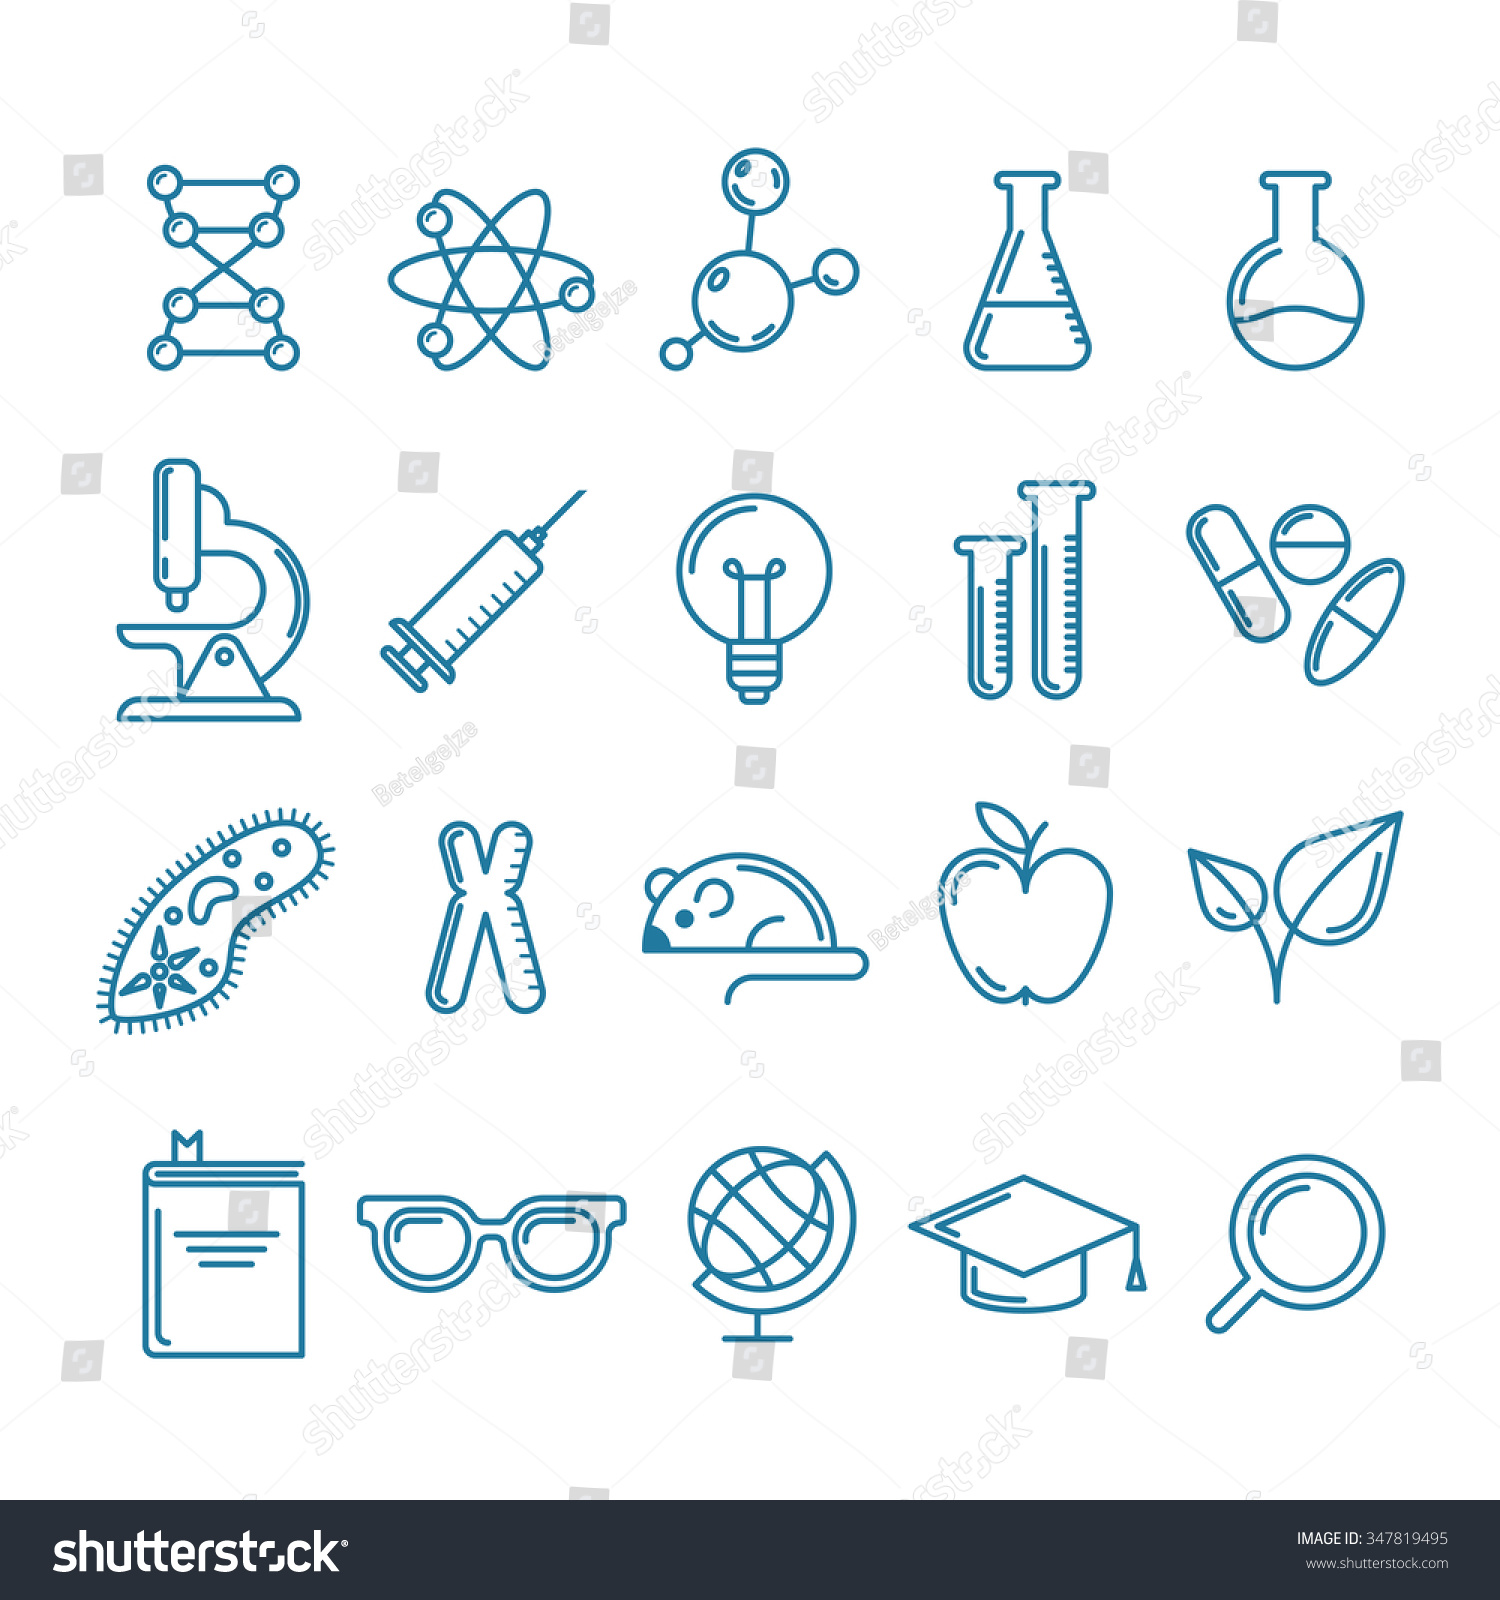 A Starter S Guide To Design Clinical Research Coordinator: Vector Outline Icons Set And Design Elements. Research